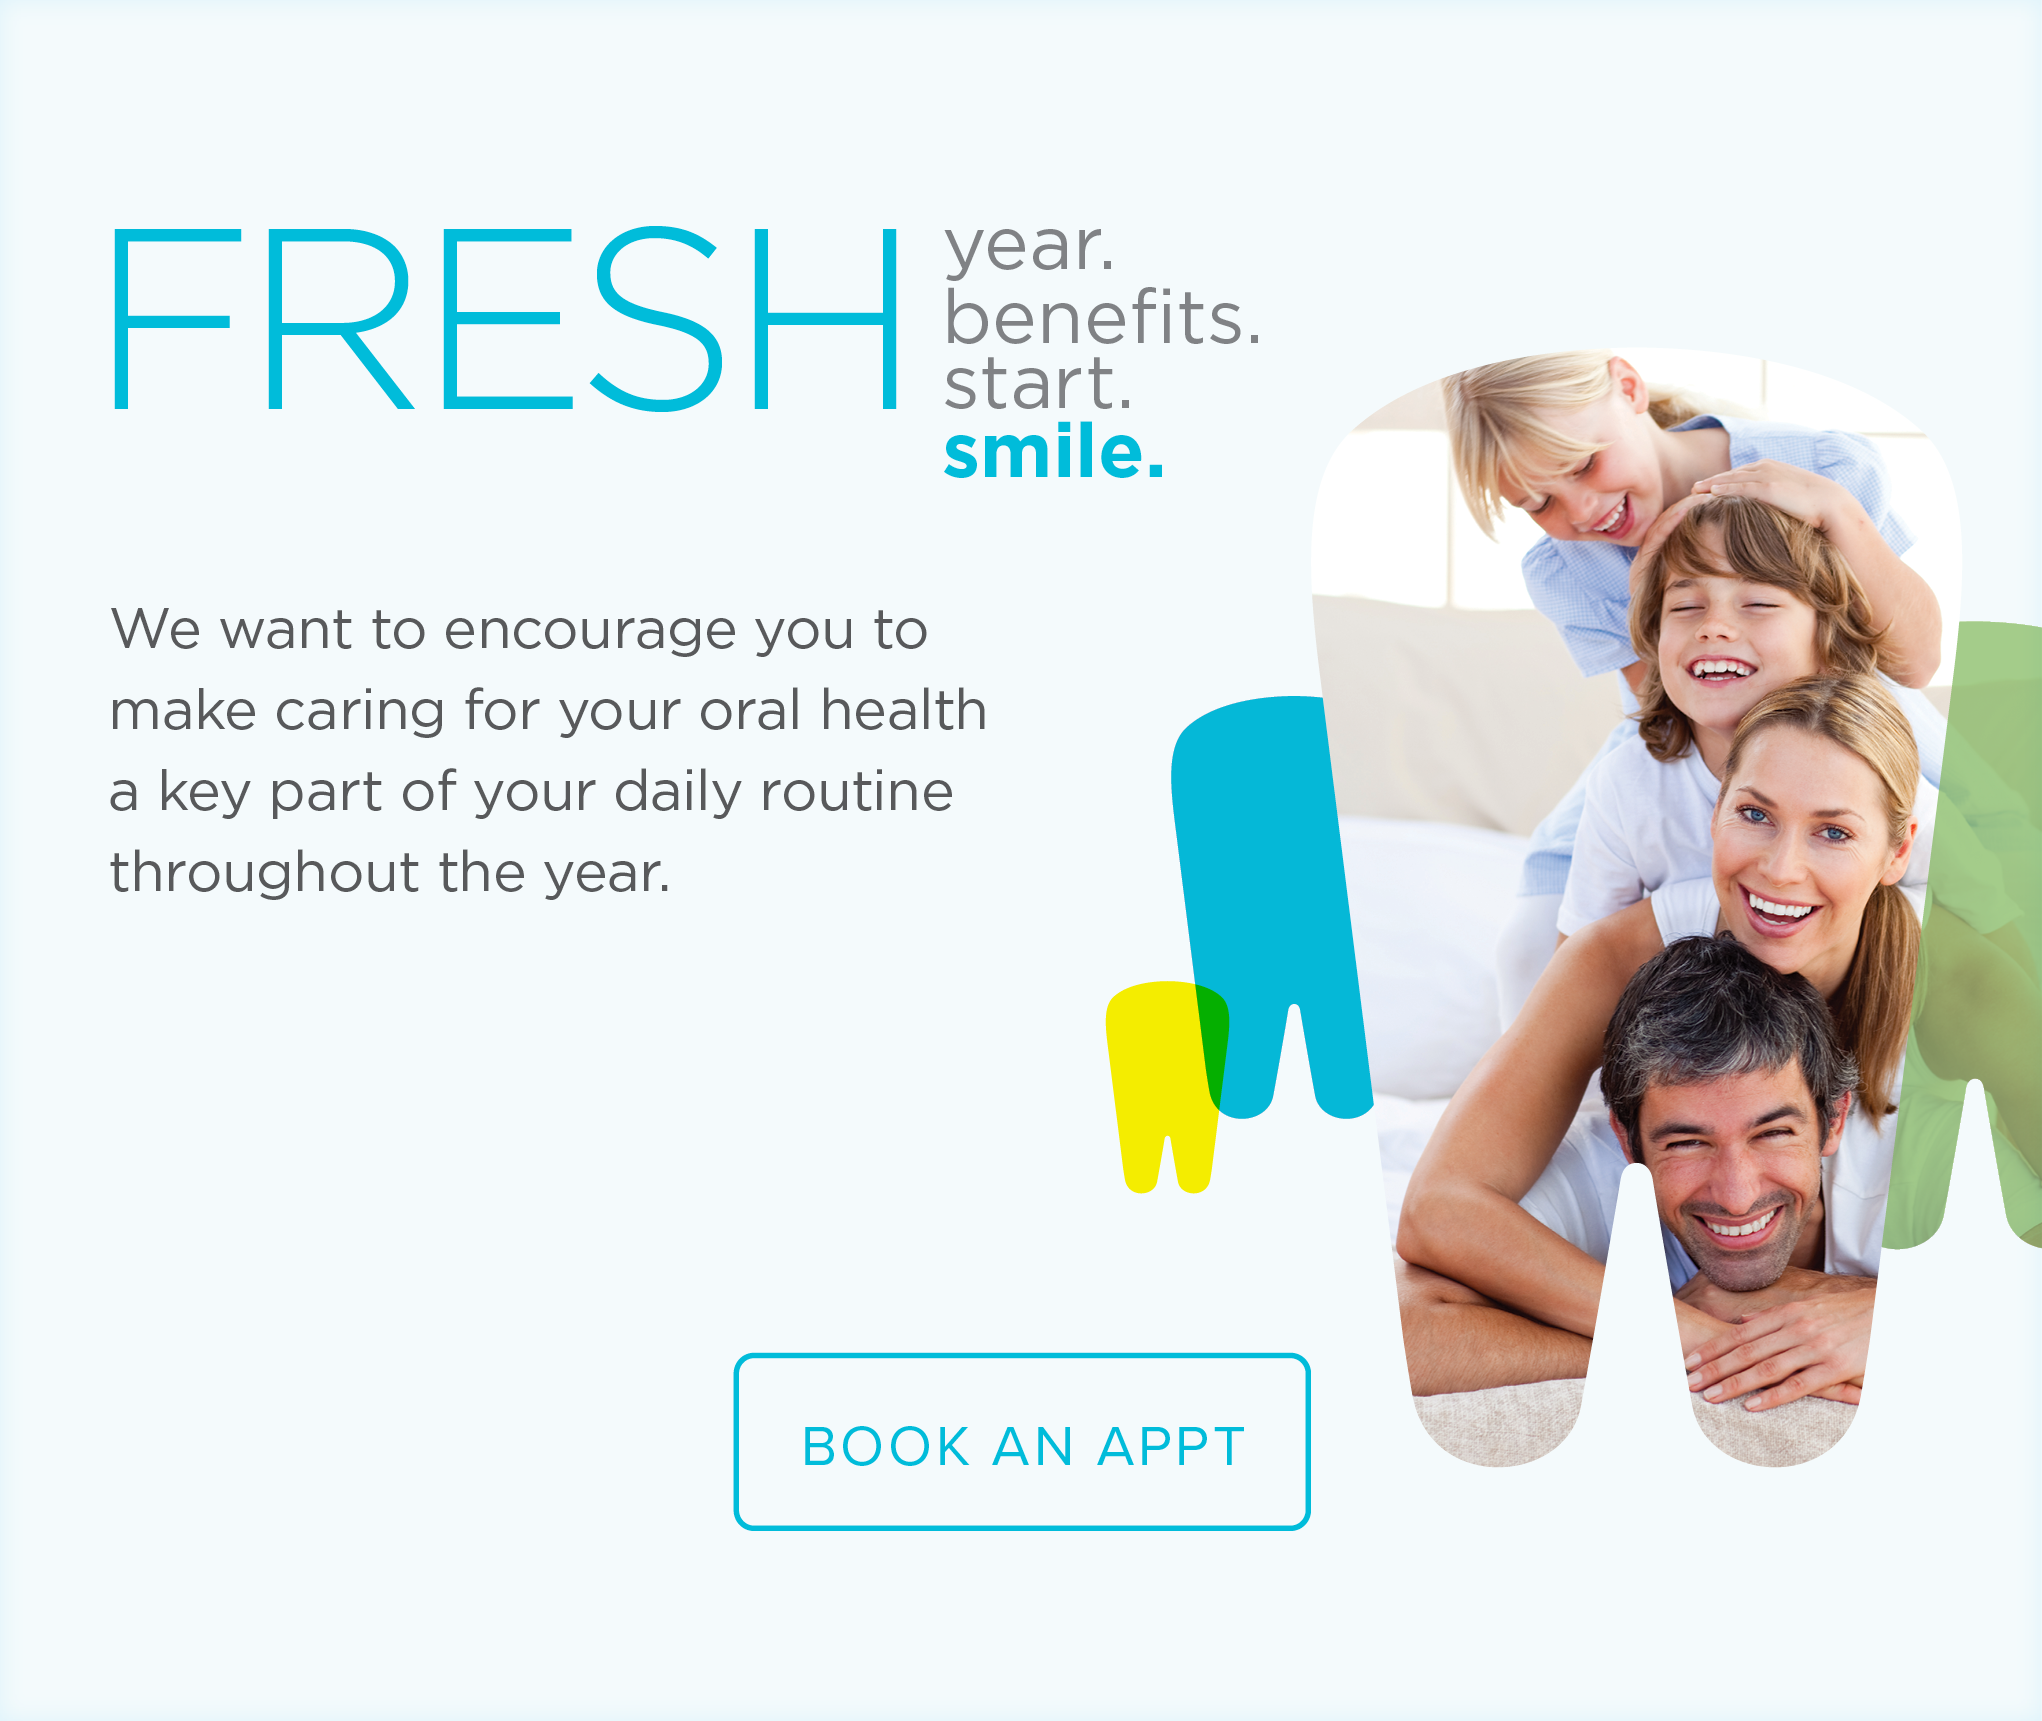 Dentists of South Pasadena - Make the Most of Your Benefits